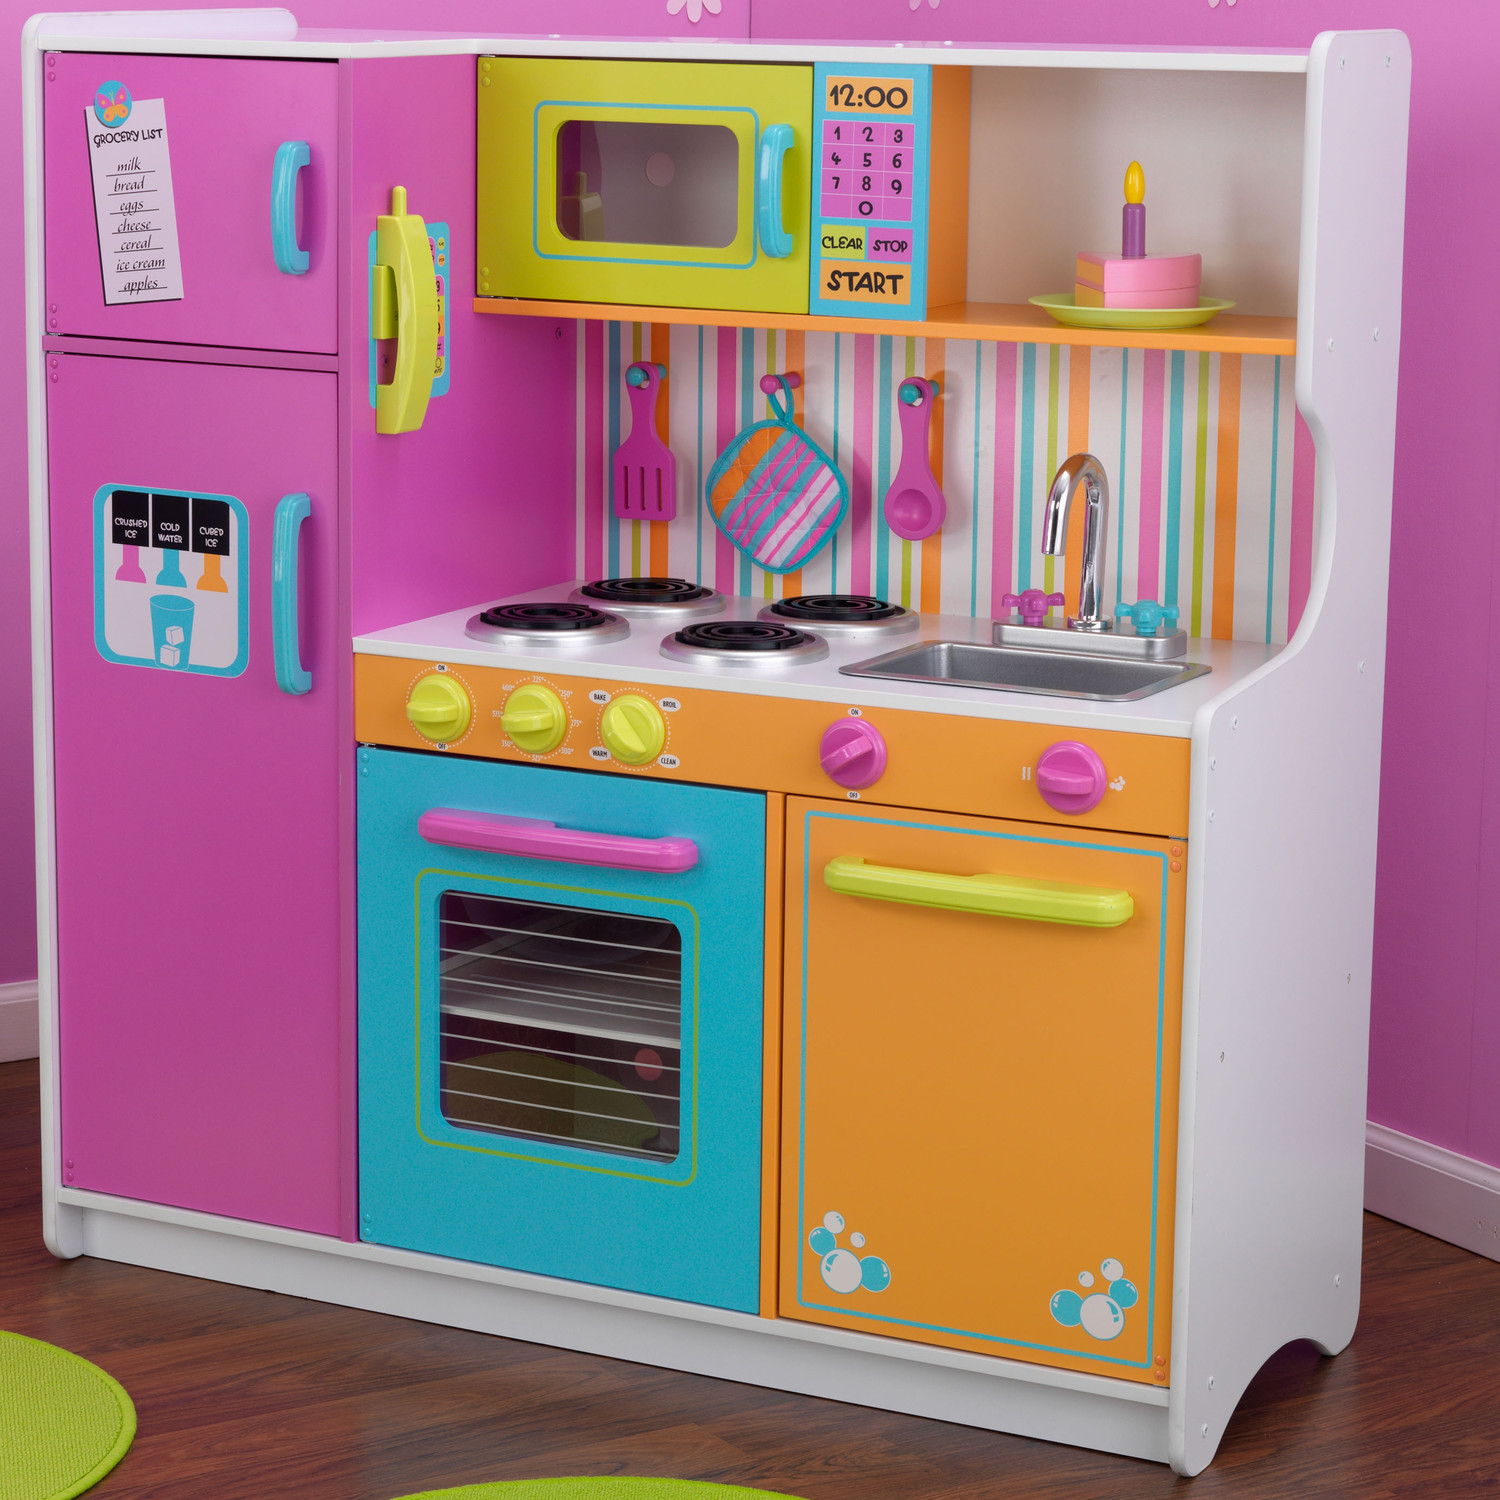 indigo canada toy sale save 59 off kidkraft deluxe kitchen playset